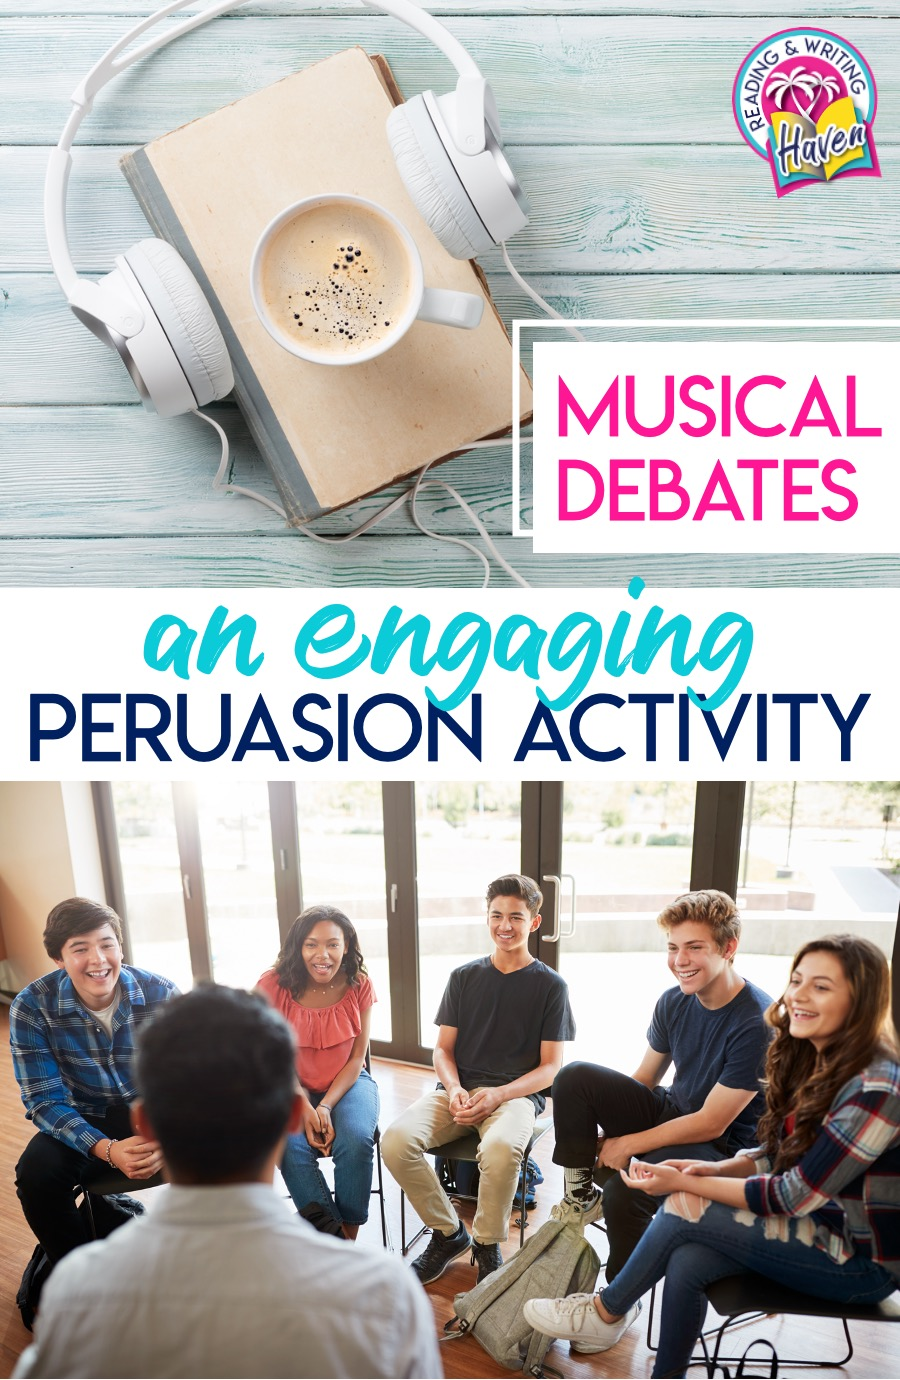 Musical debates are an engaging twist on mini debates and great for engaging students in the middle and high school classroom #DebateActivity #TeachingPersuasion #MiddleSchoolELA #HighSchoolELA